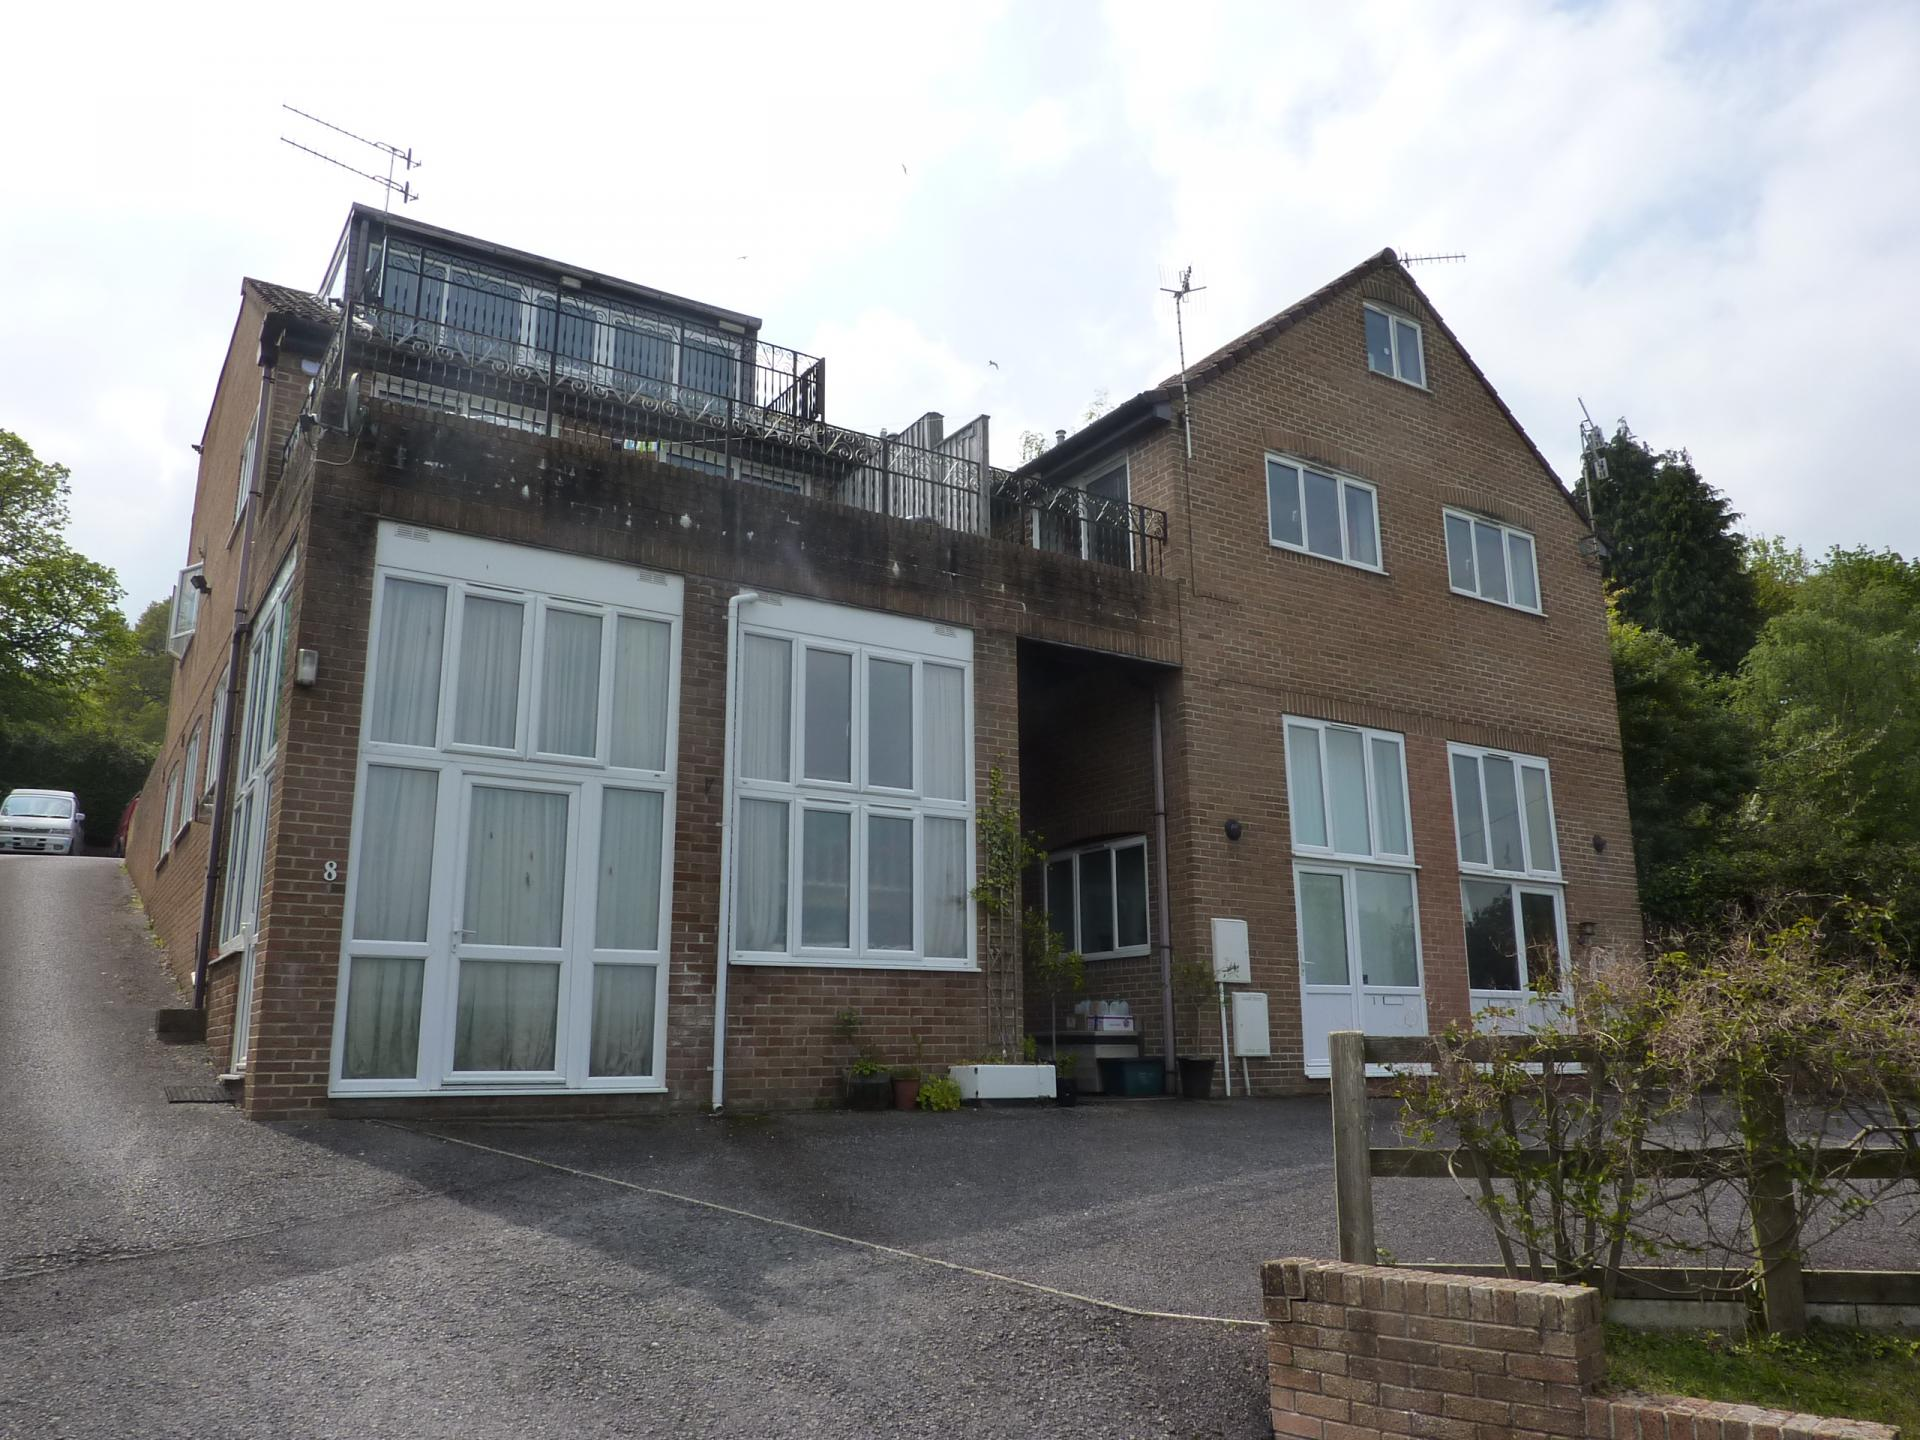 2 Bedrooms Flat for sale in Uplyme Road, Lyme Regis